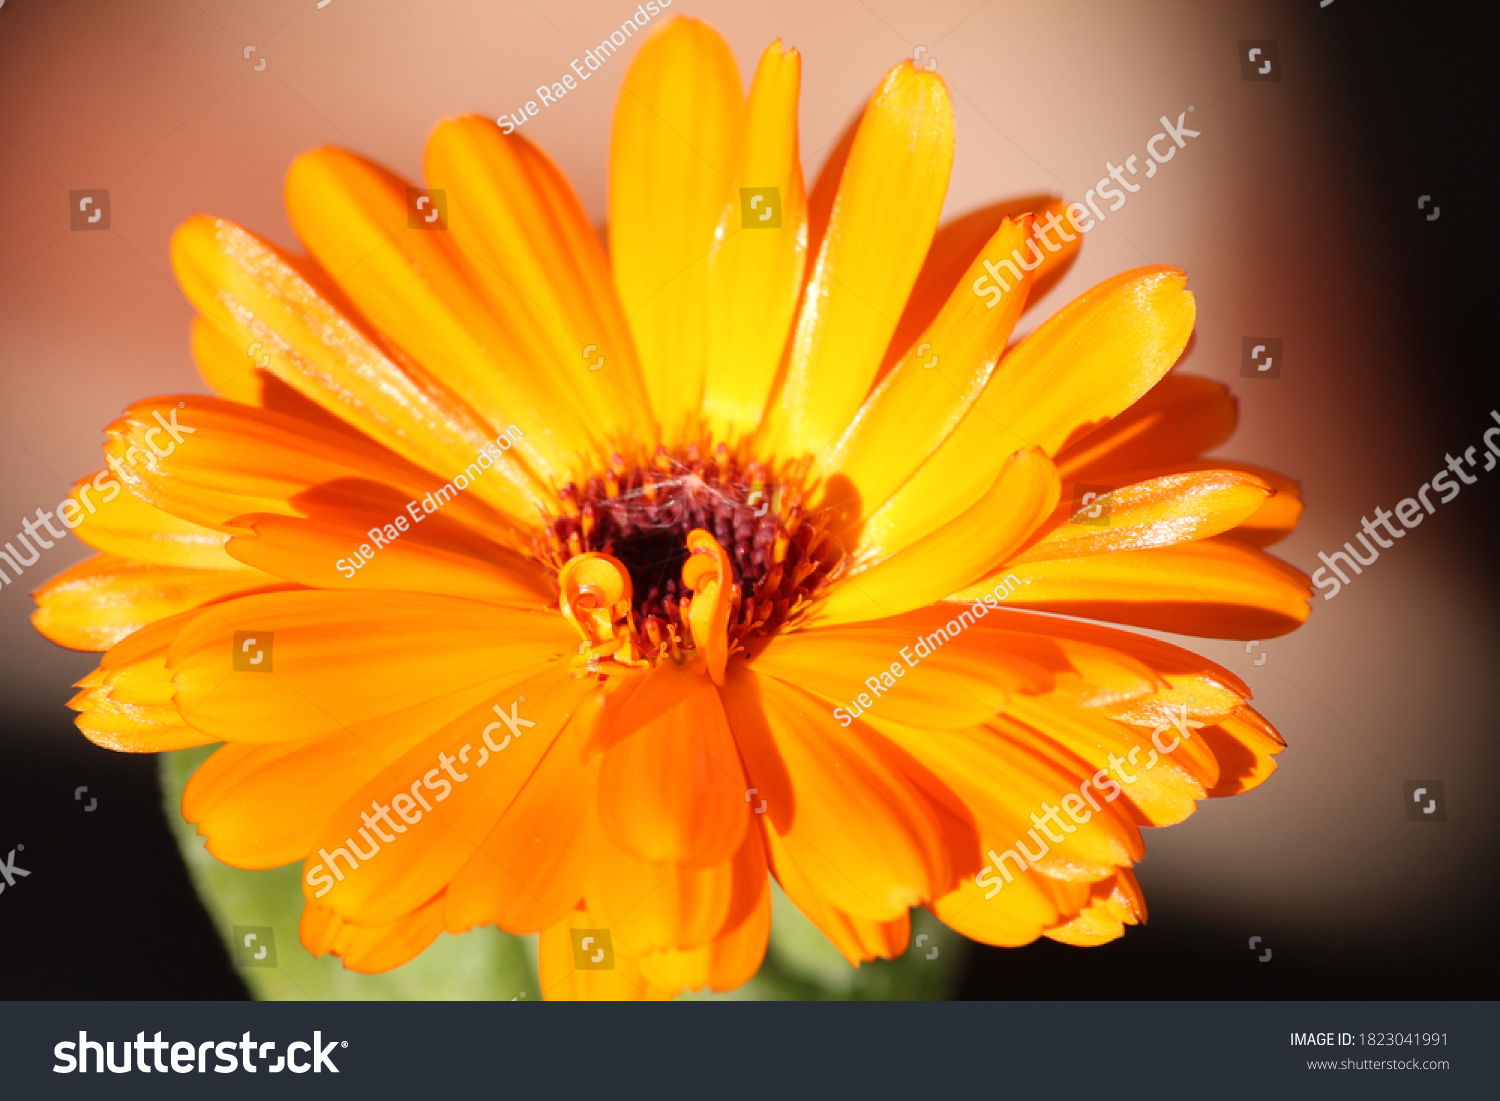 Selective focus of a marigold flower head close up